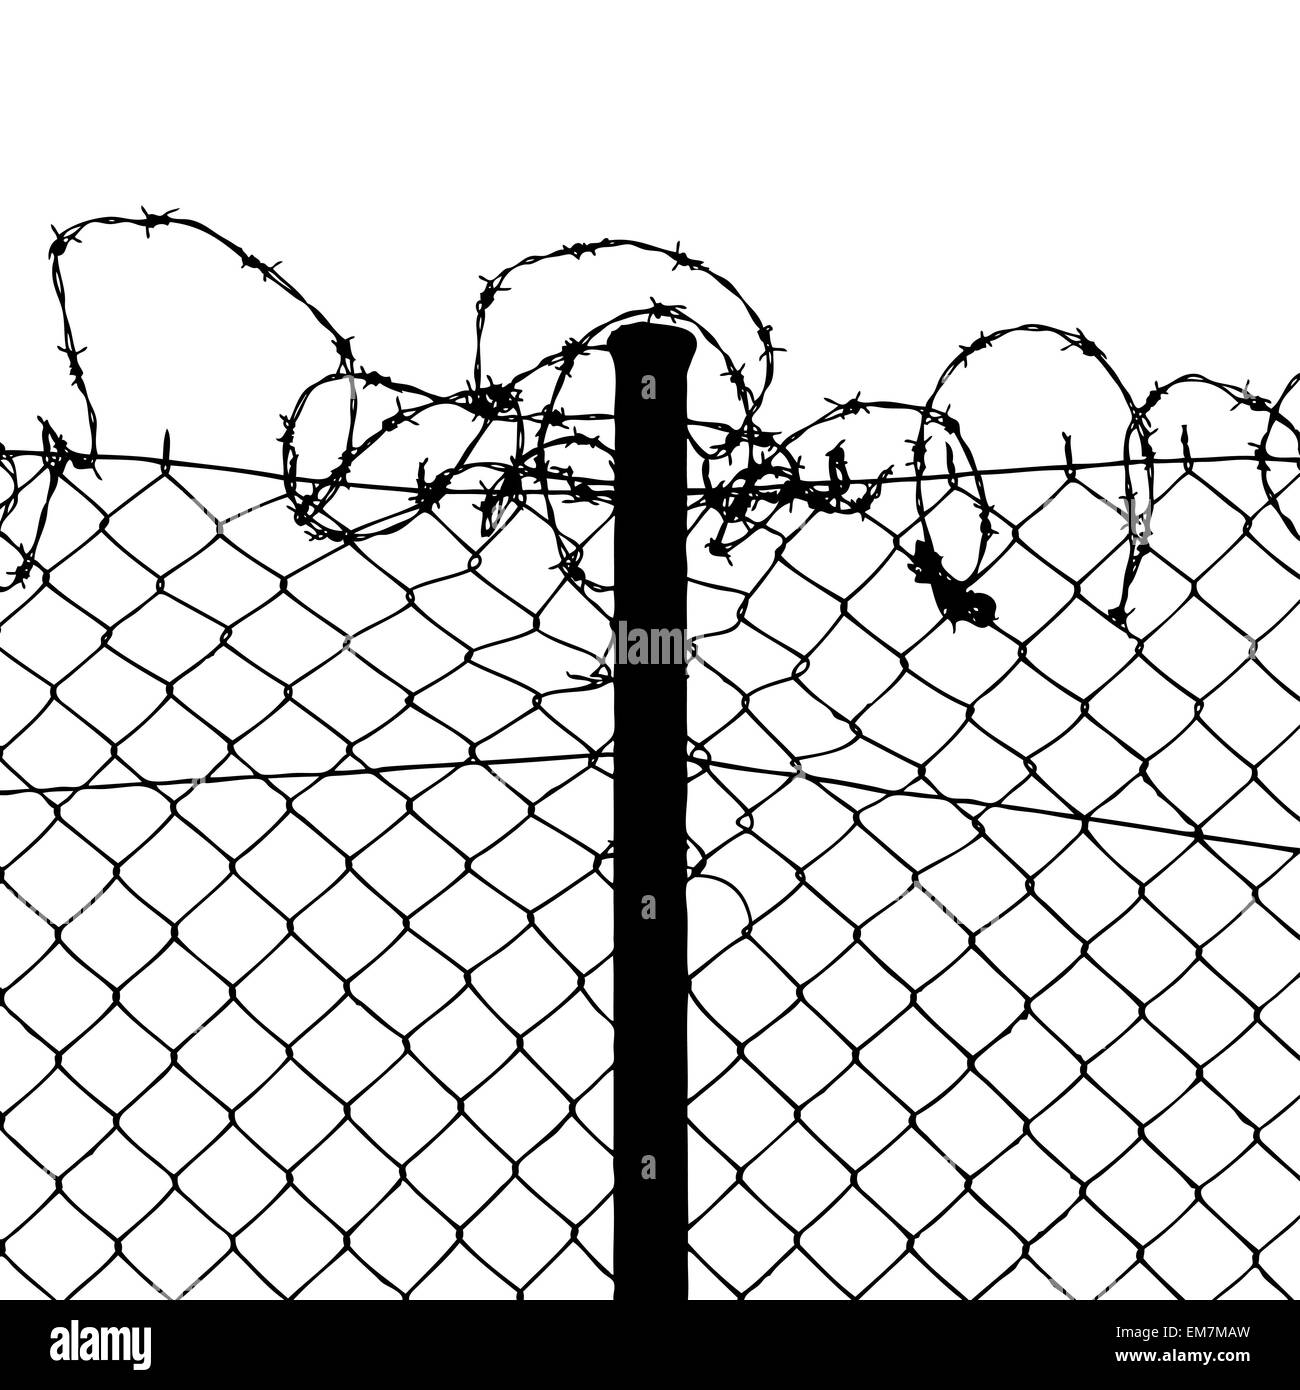 Barbed Wire Fence Stock Vector Images - Alamy